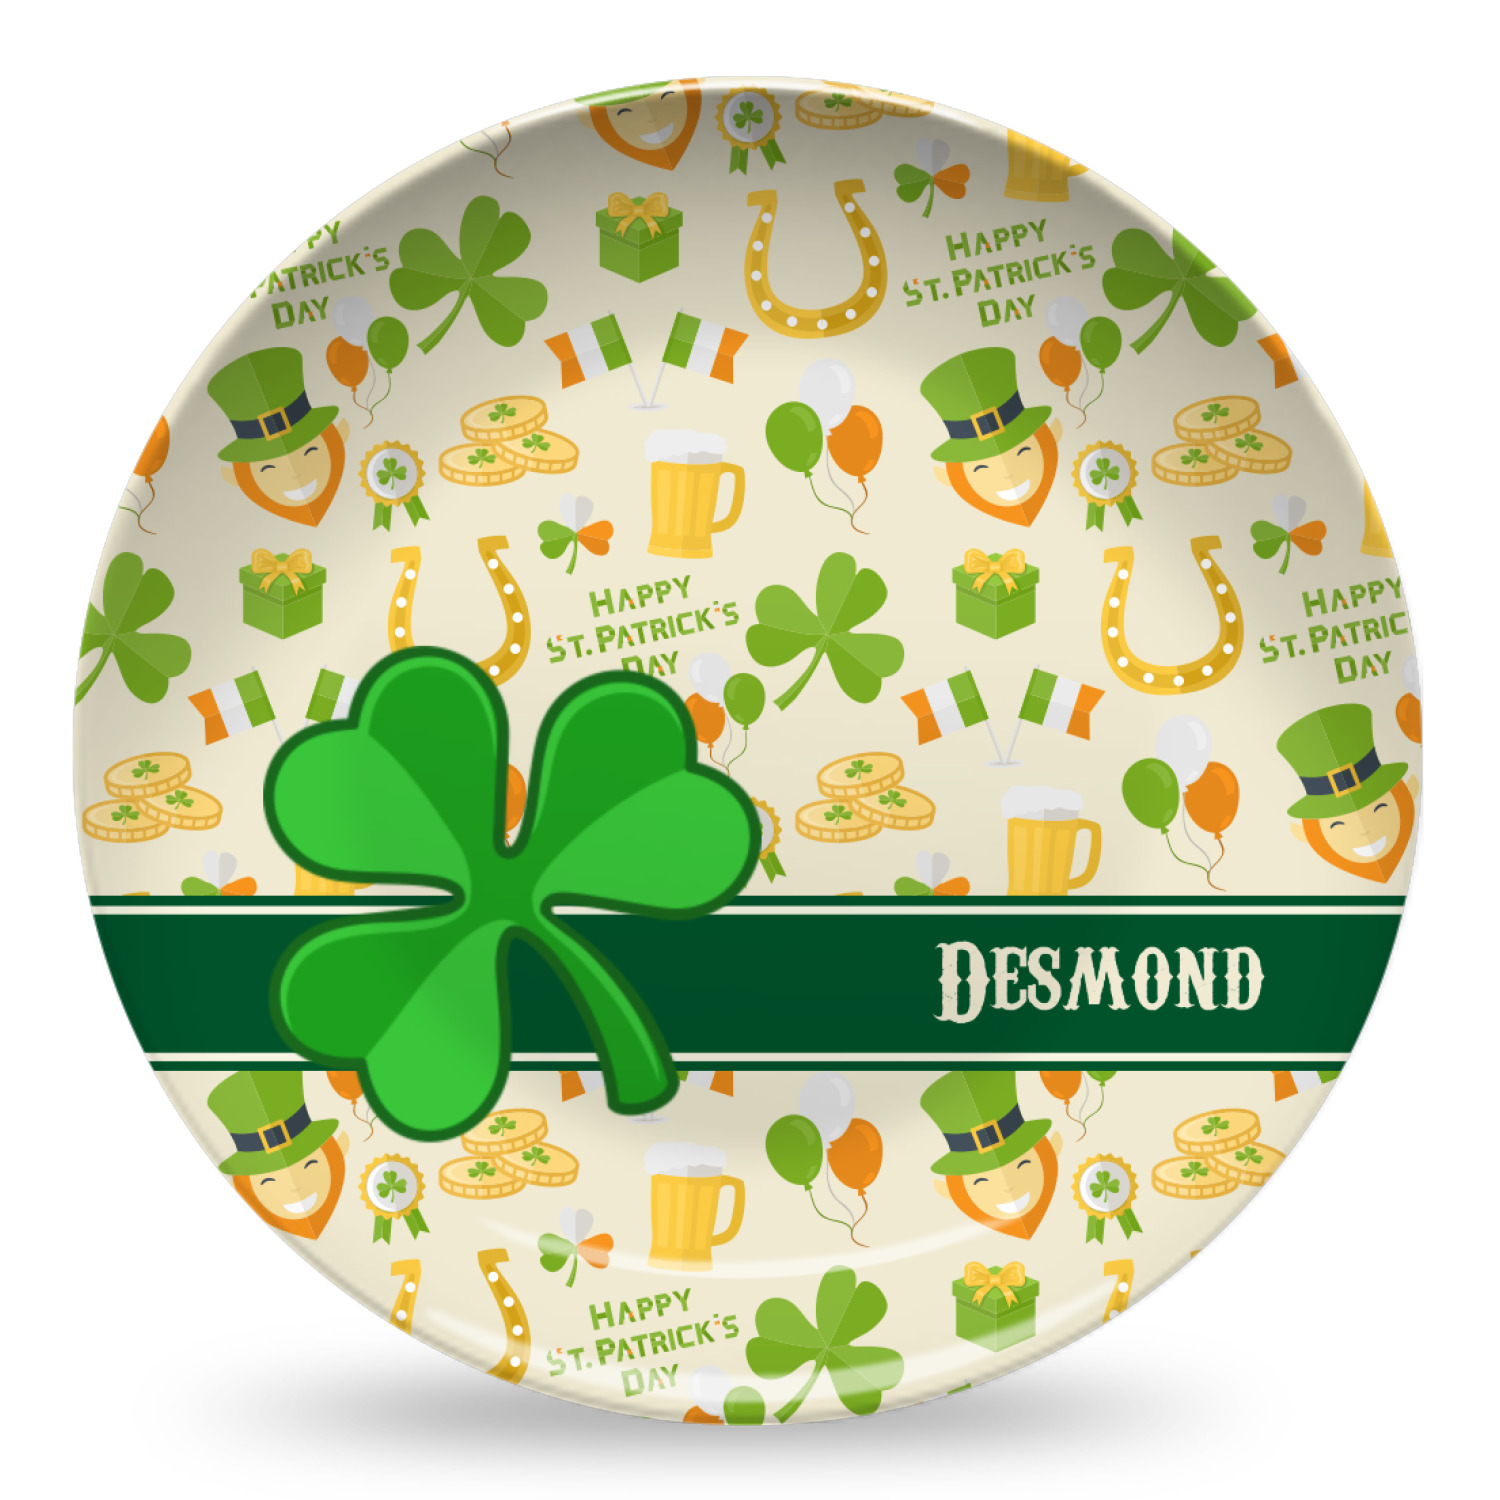 st patrick 39 s day microwave safe plastic plate composite polymer personalized youcustomizeit. Black Bedroom Furniture Sets. Home Design Ideas